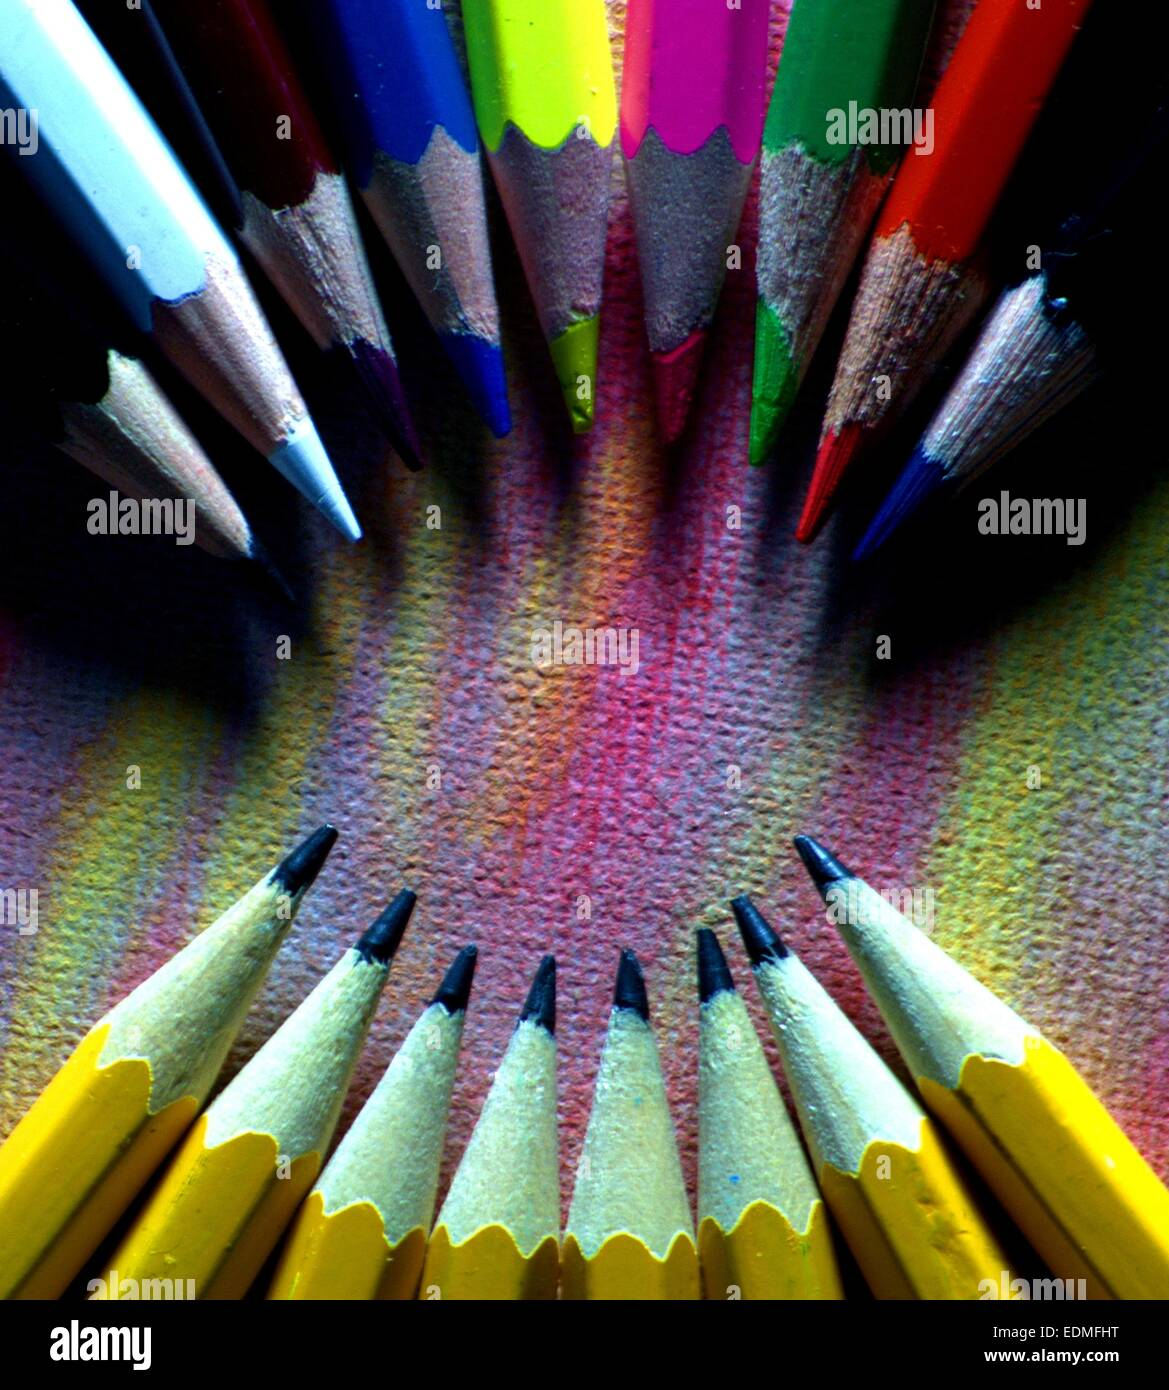 colored pencils in an arc formation facing an arc of regular pencils - Stock Image